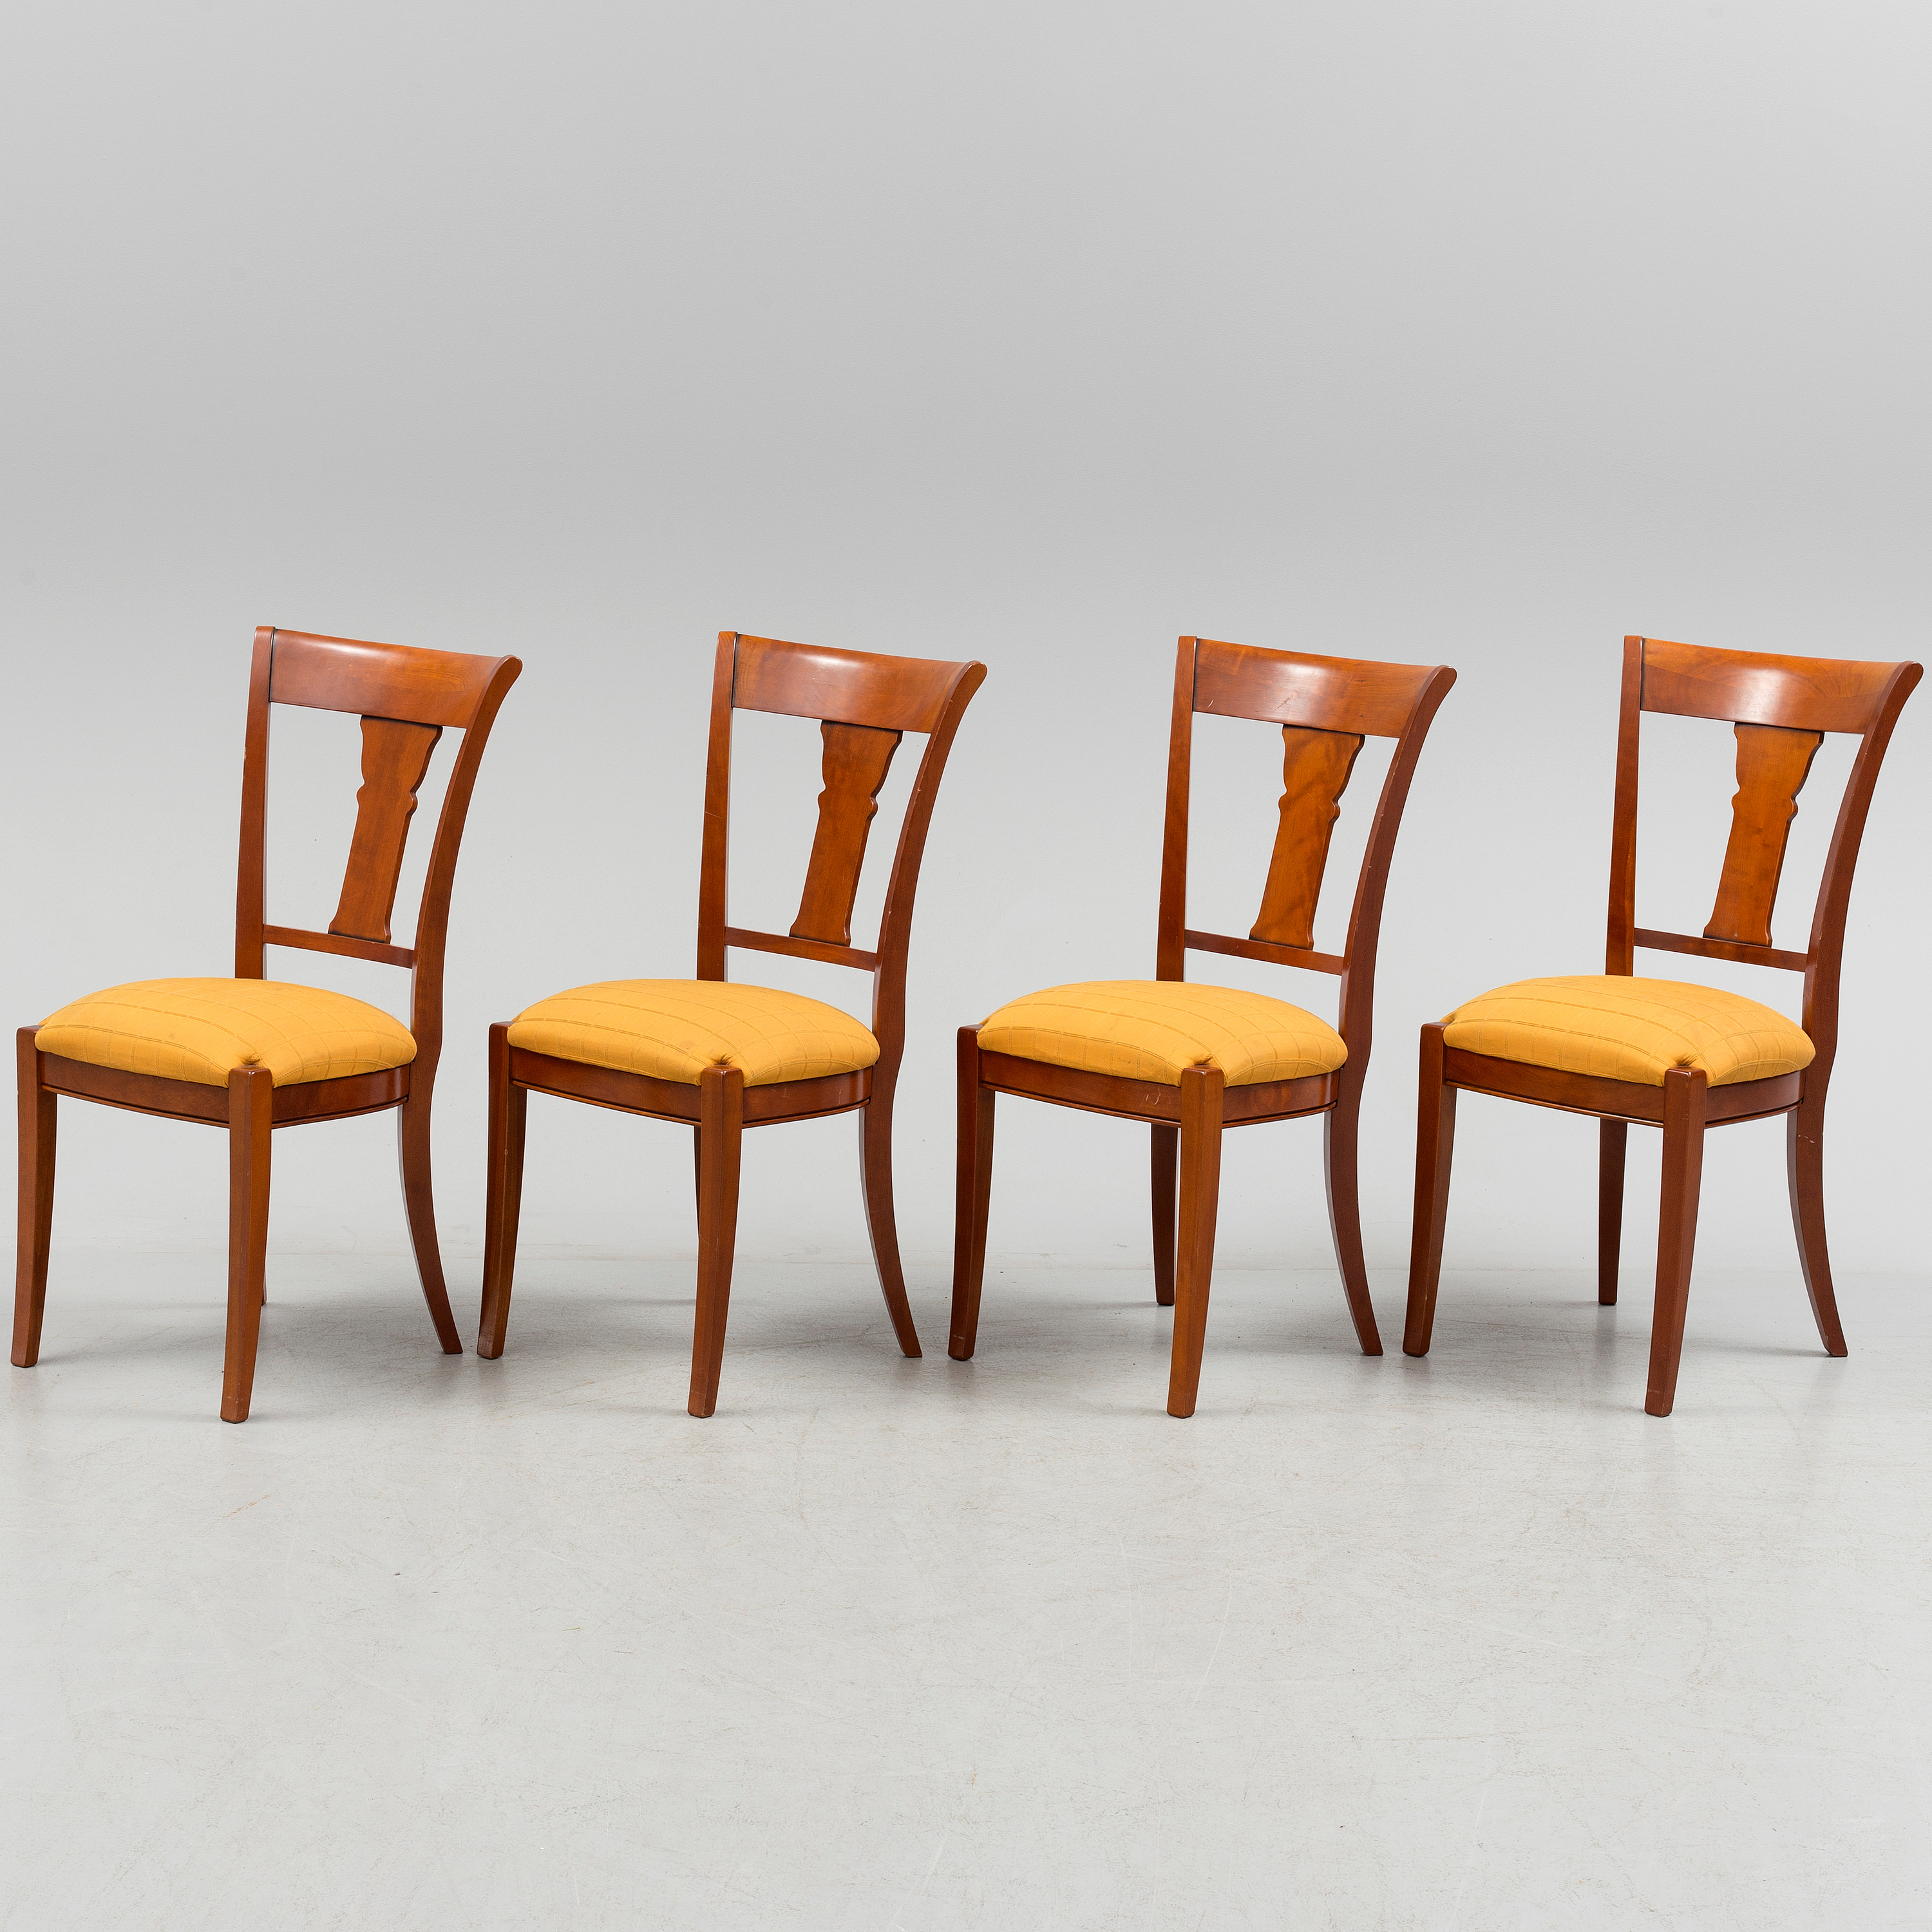 Four Chairs From Grange France Late 20th 21st Century Bukowskis # Table Grange France